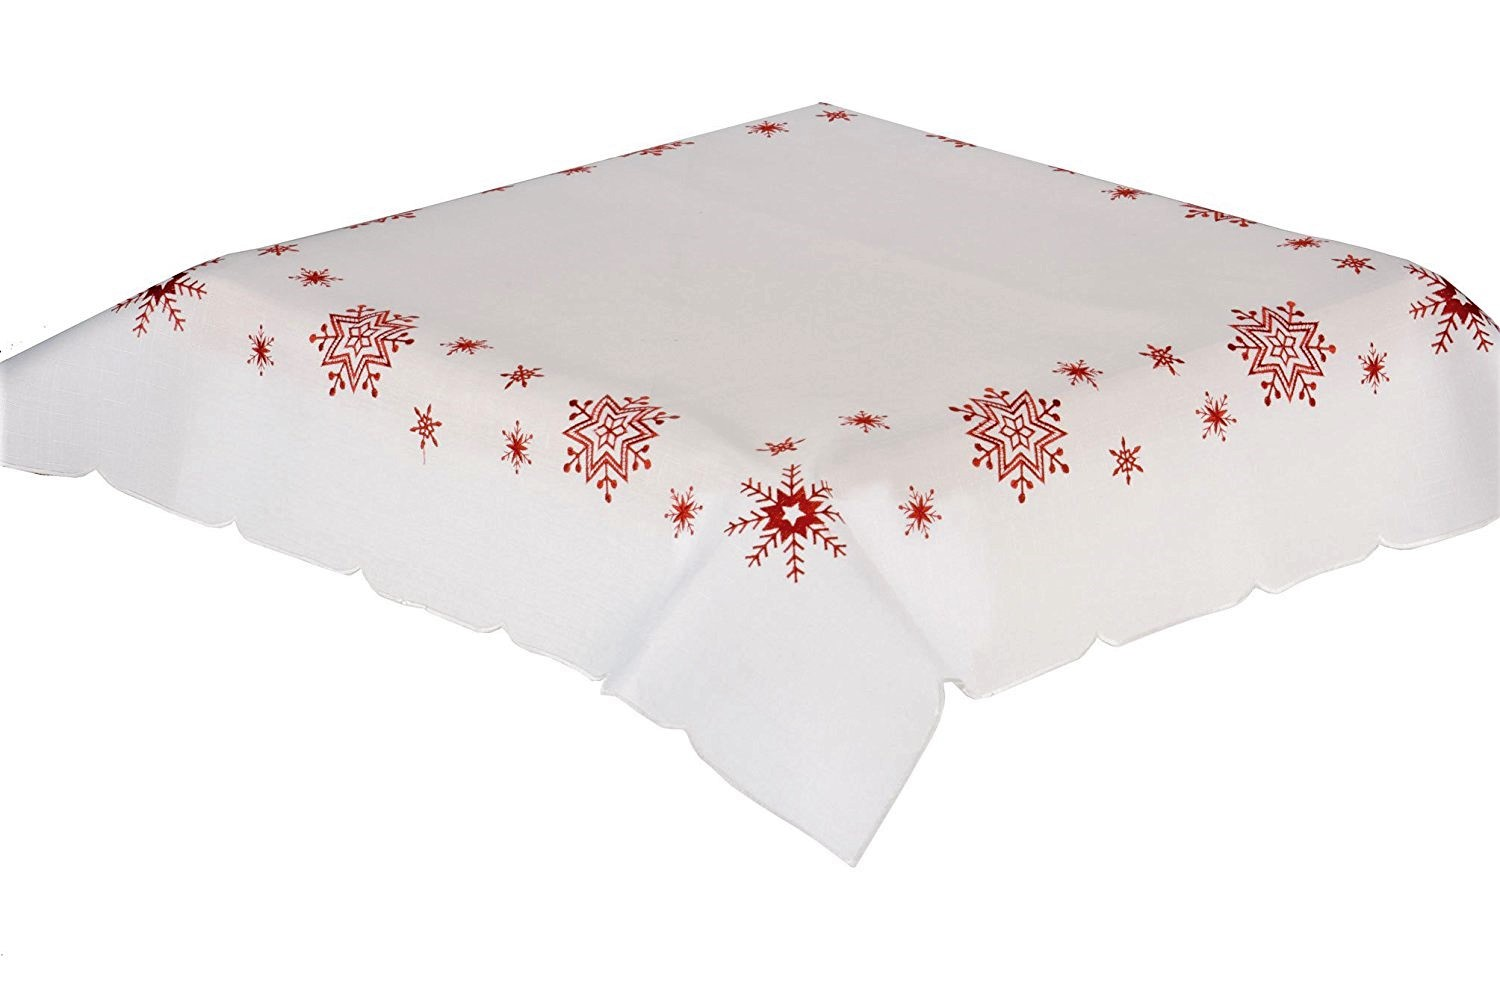 Red Snowflake Embroidered Red Snowflakes On White